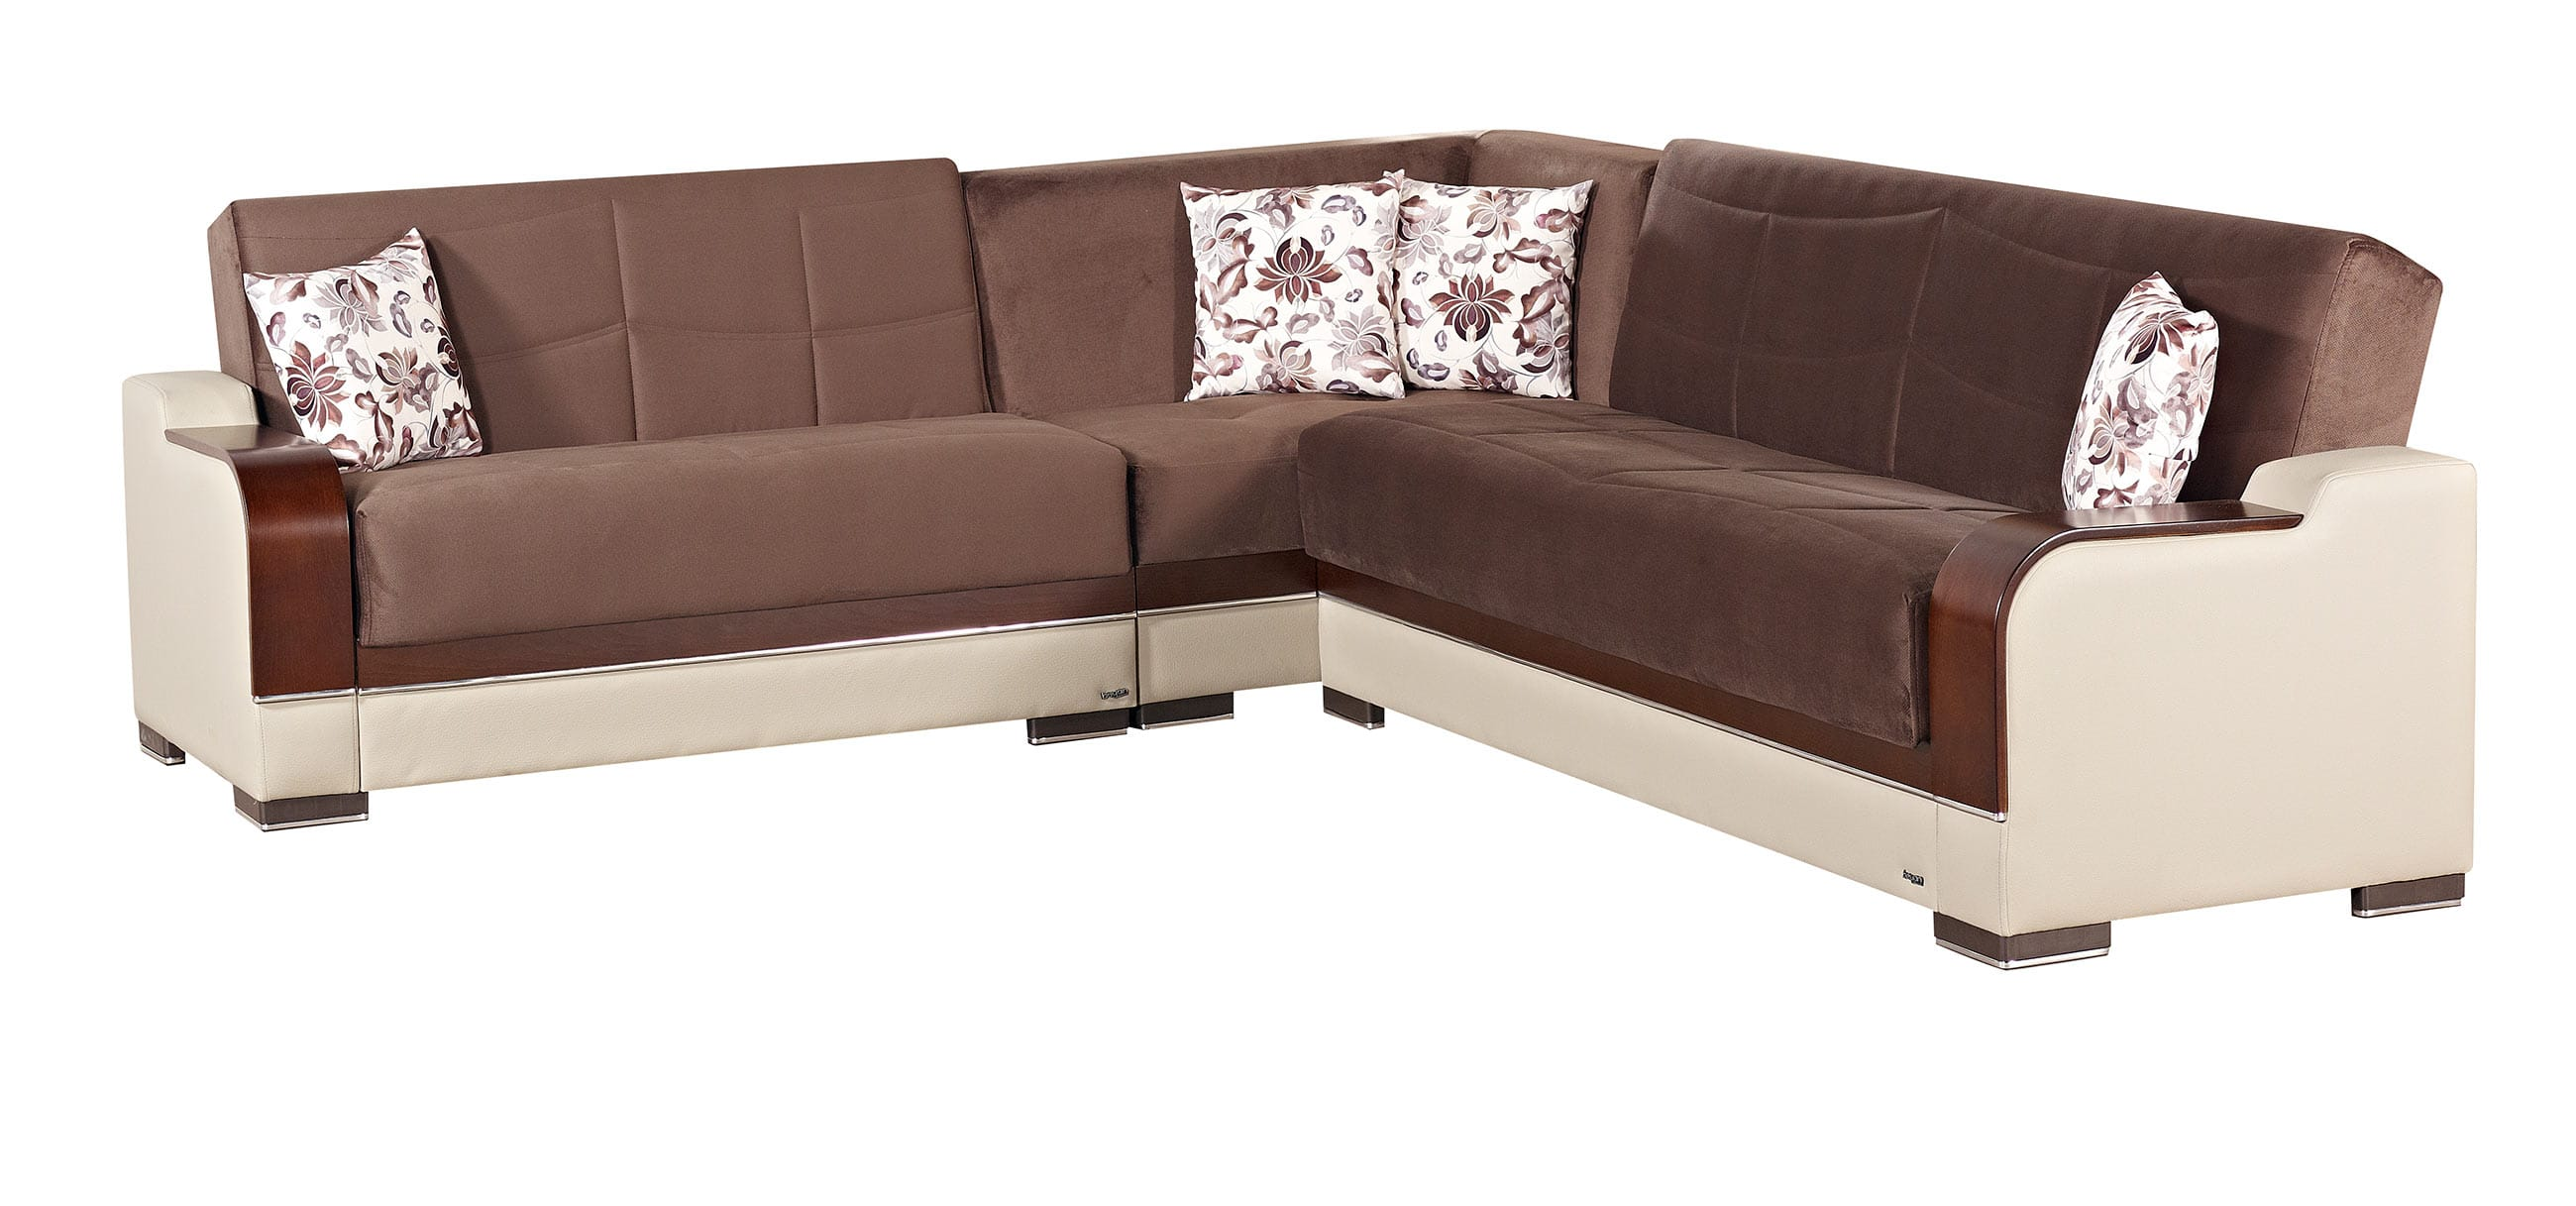 empire furniture sofa masoli texas brown fabric sectional by usa